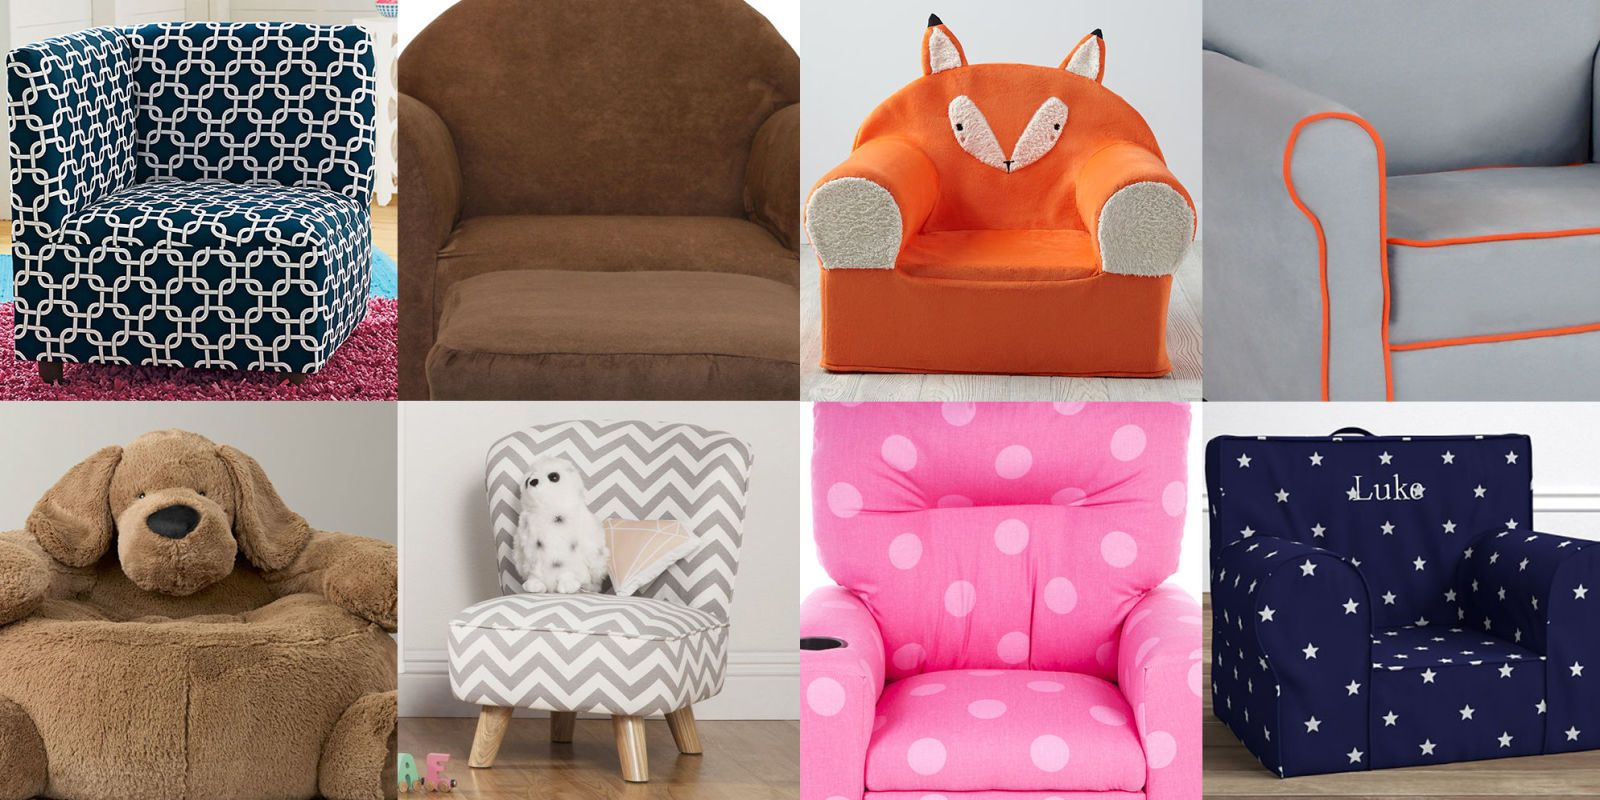 Genial Upholstered Chairs For Kids